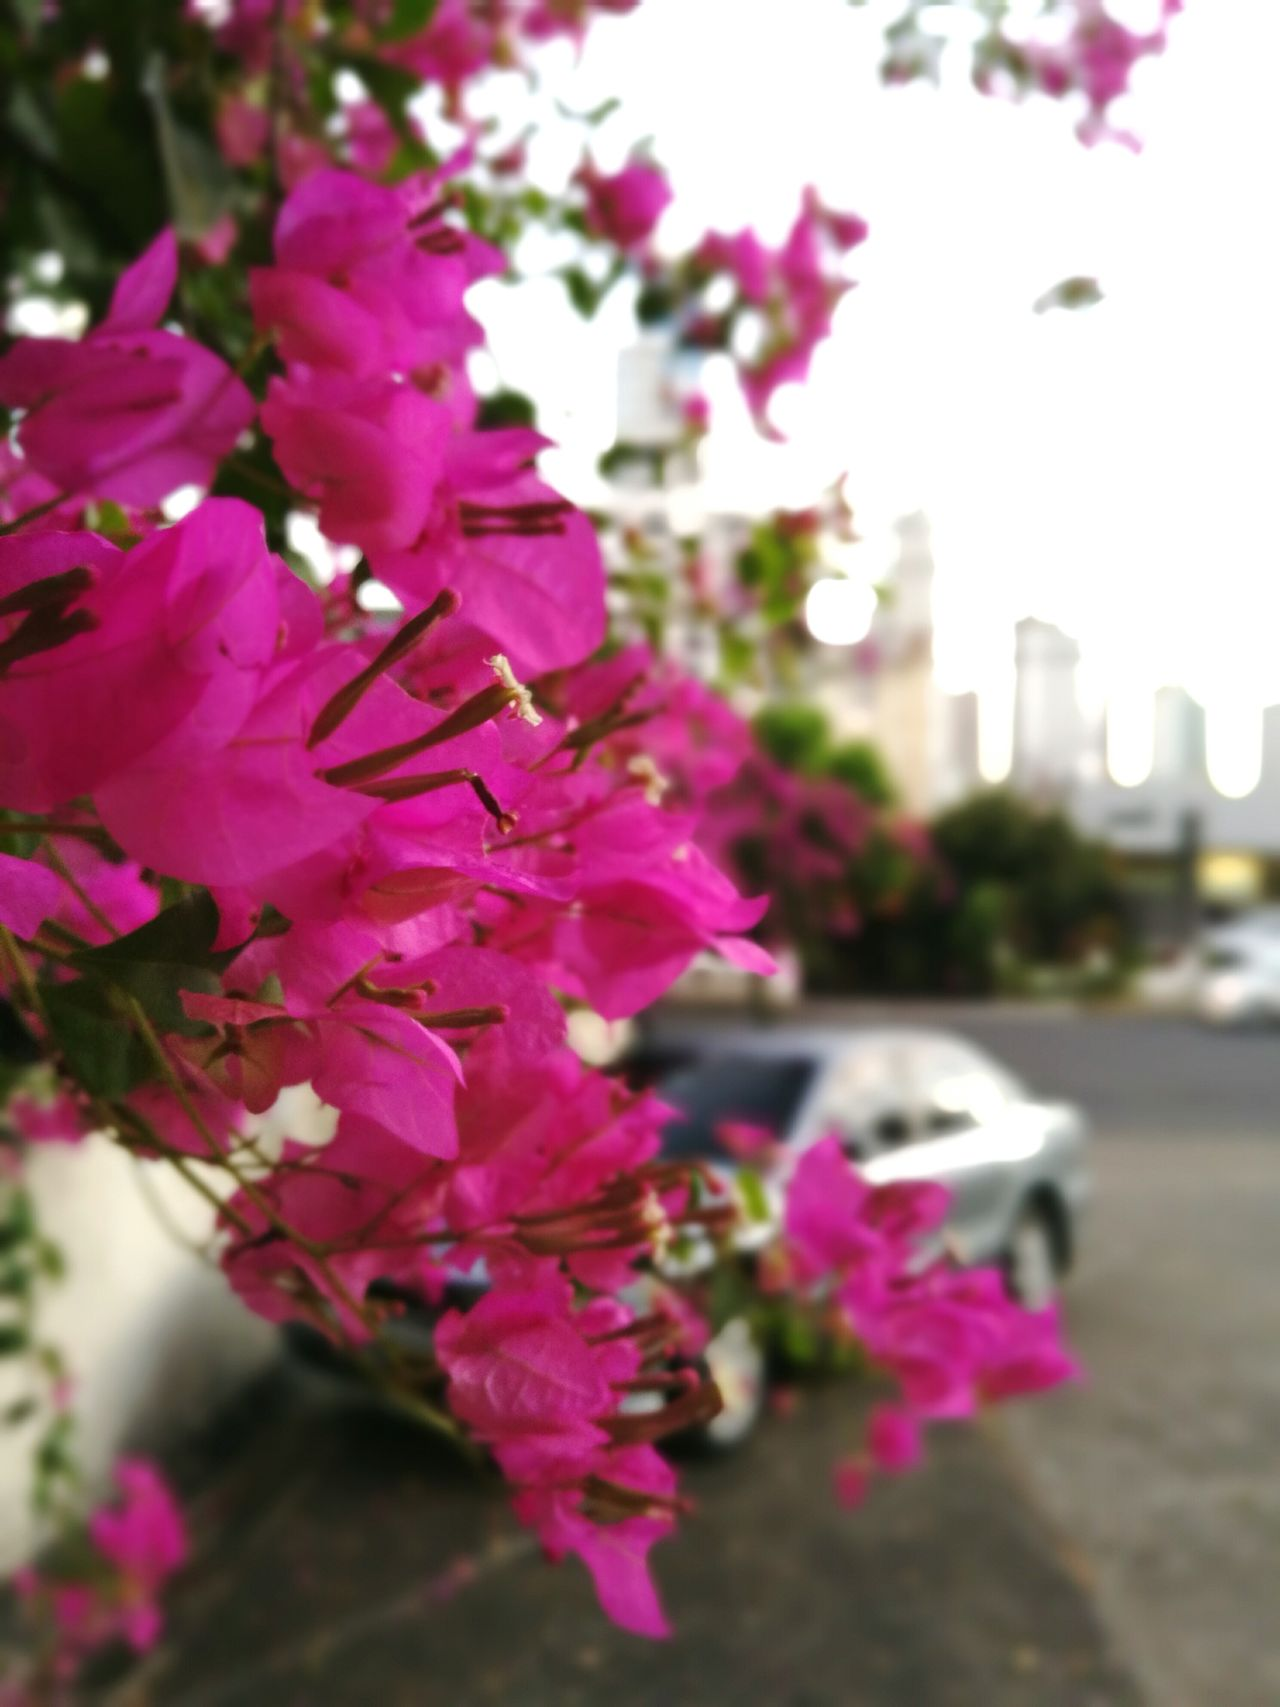 Flower City Pink Color Outdoors Cityscape No People Day Close-up Macro Pink Pink Flower Rosado Rosé City Flowers Contraste Panamá Panama City Verano Summer Colores De La Naturaleza Nature_perfection Nature Adapted To The City